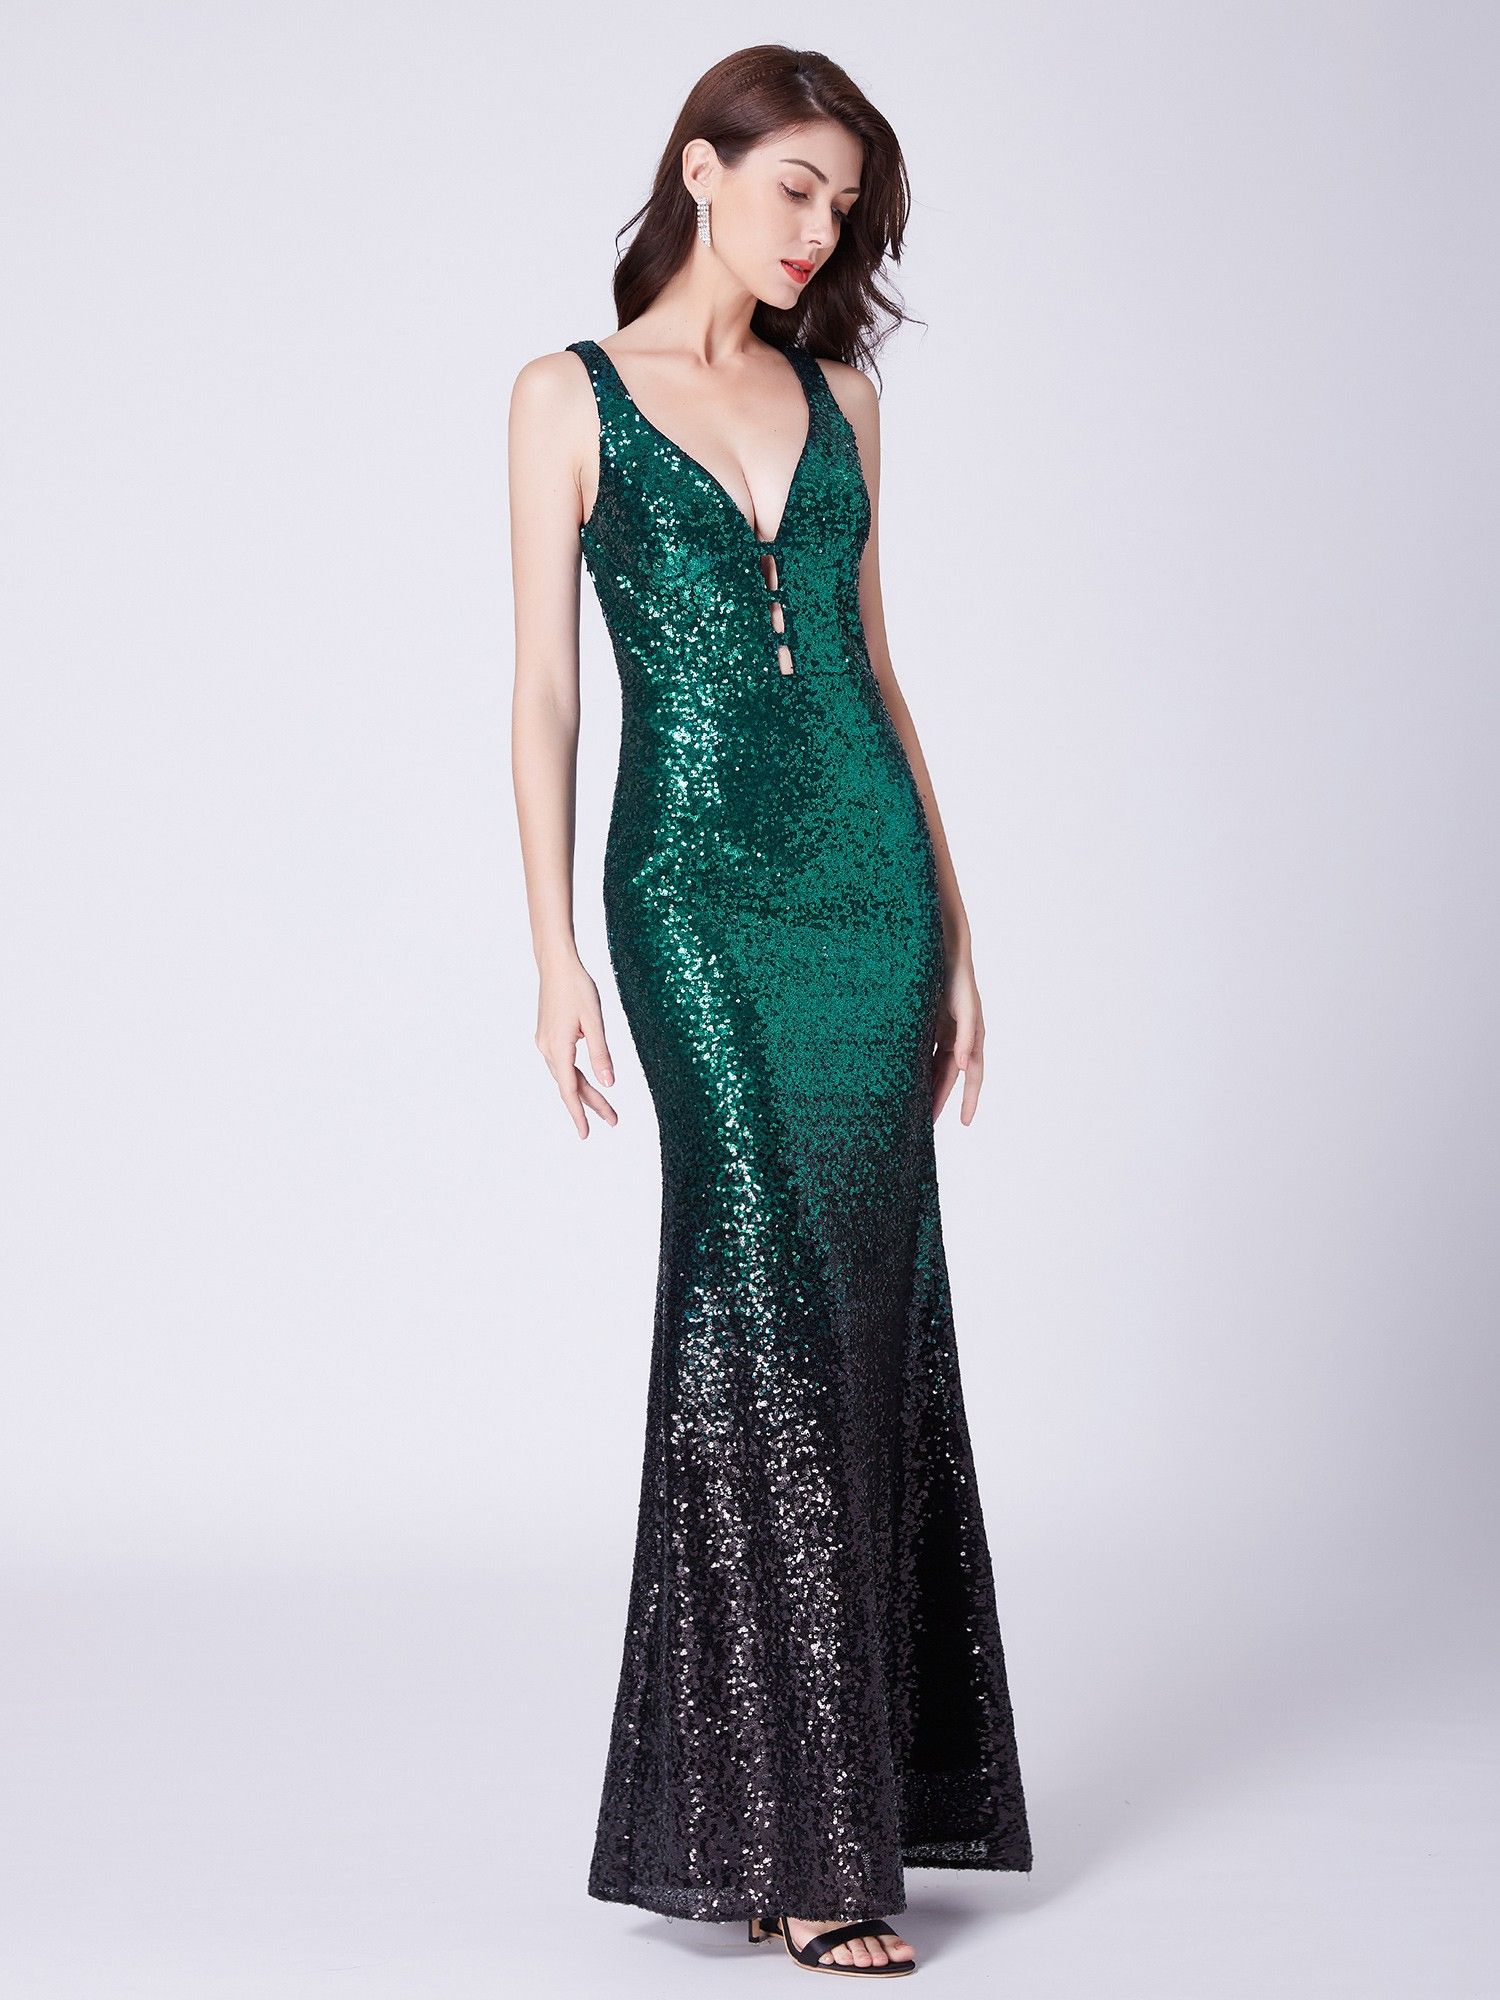 9a4899bd Long Ombre Sequin Dress with Deep V Neck | Ever-Pretty #eveningdress  #EverPretty #sequindress #vneckdress #longdress #ombredress #sparklingdress